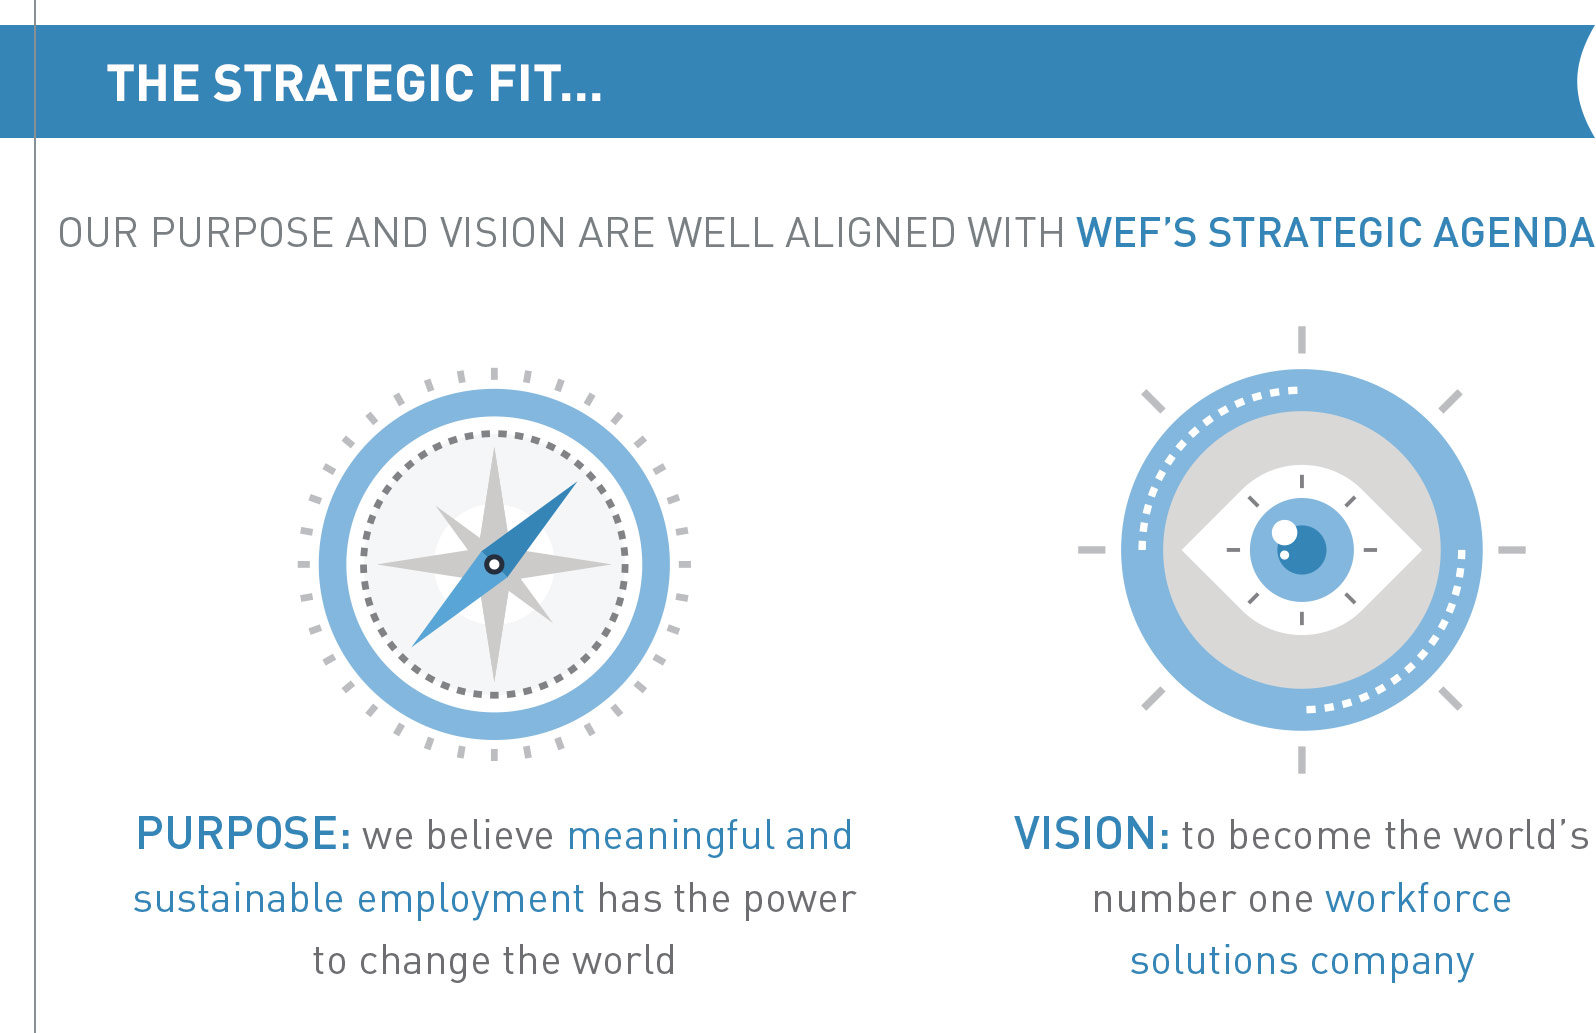 The Strategic Fit...